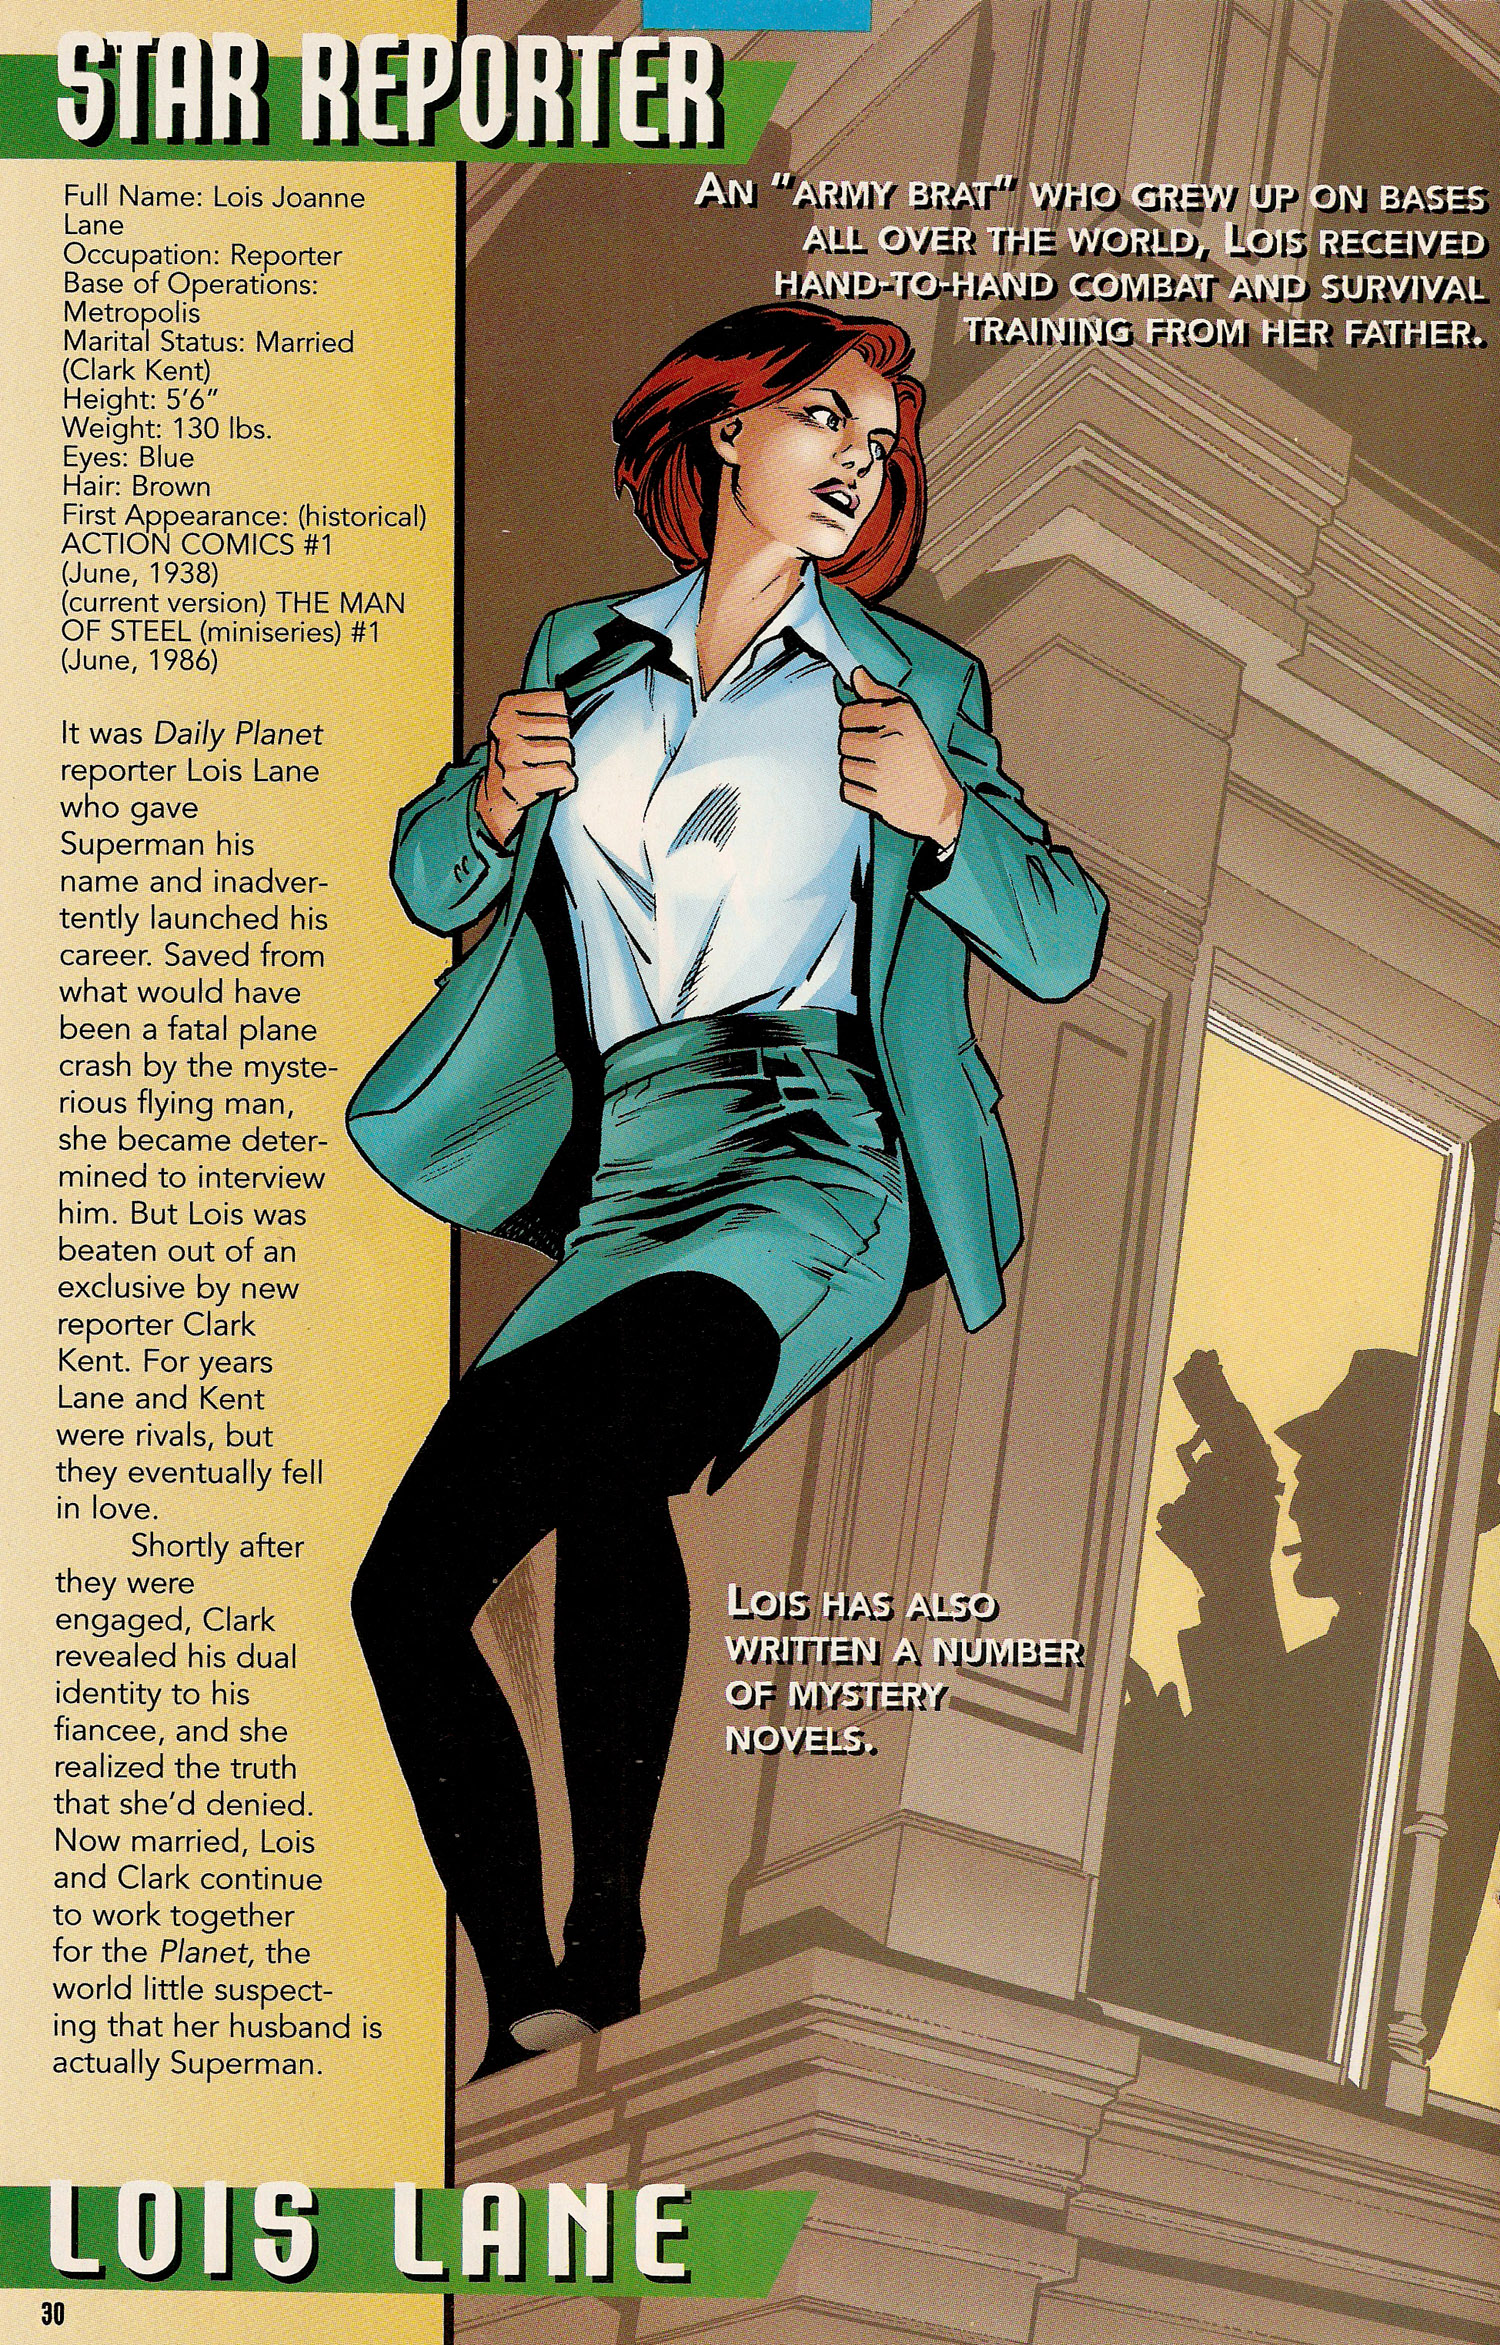 Secret Files 1998 - 03 Lois Lane